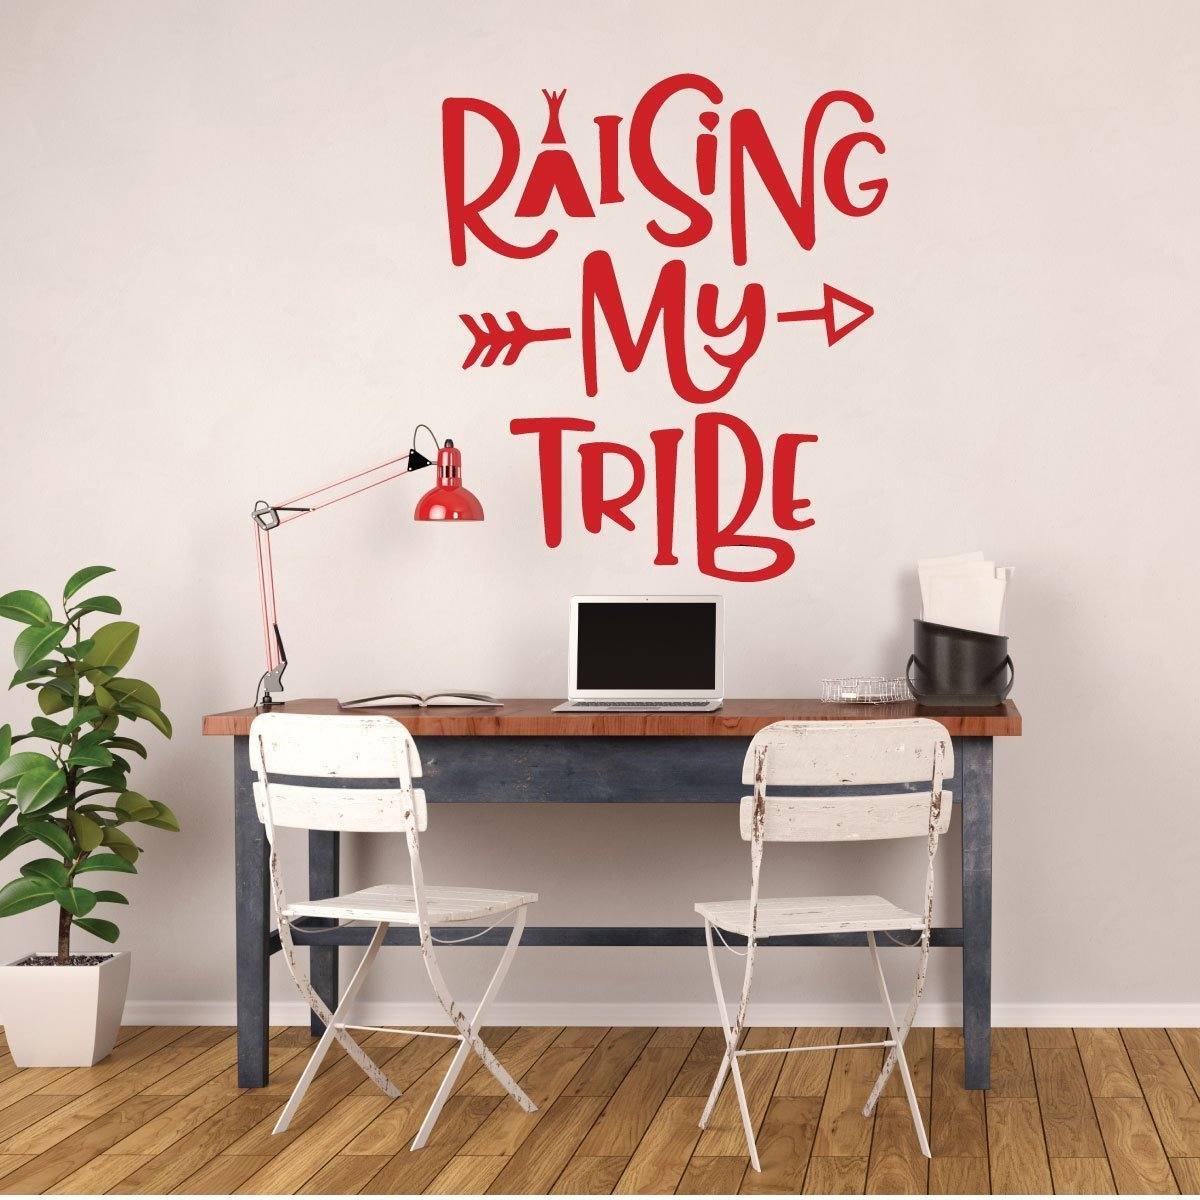 Family Wall Decor - Raising My Tribe